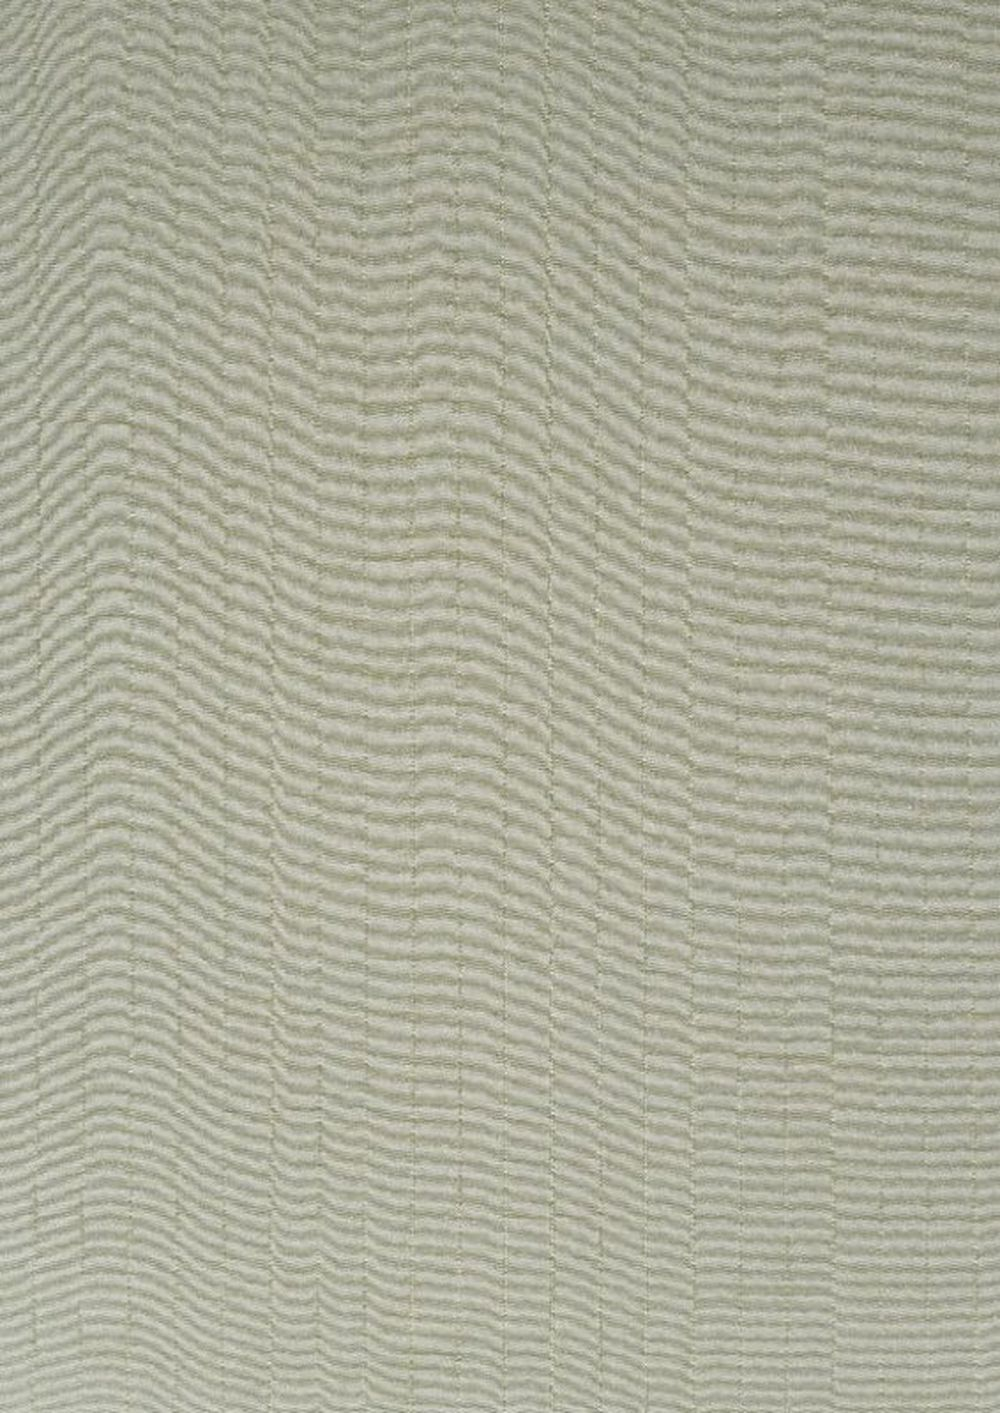 Photo of the fabric Rural FR-One Frost swatch by FR-One. Use for Curtains, Accessory, Top of Bed. Style of Pattern, Stripe